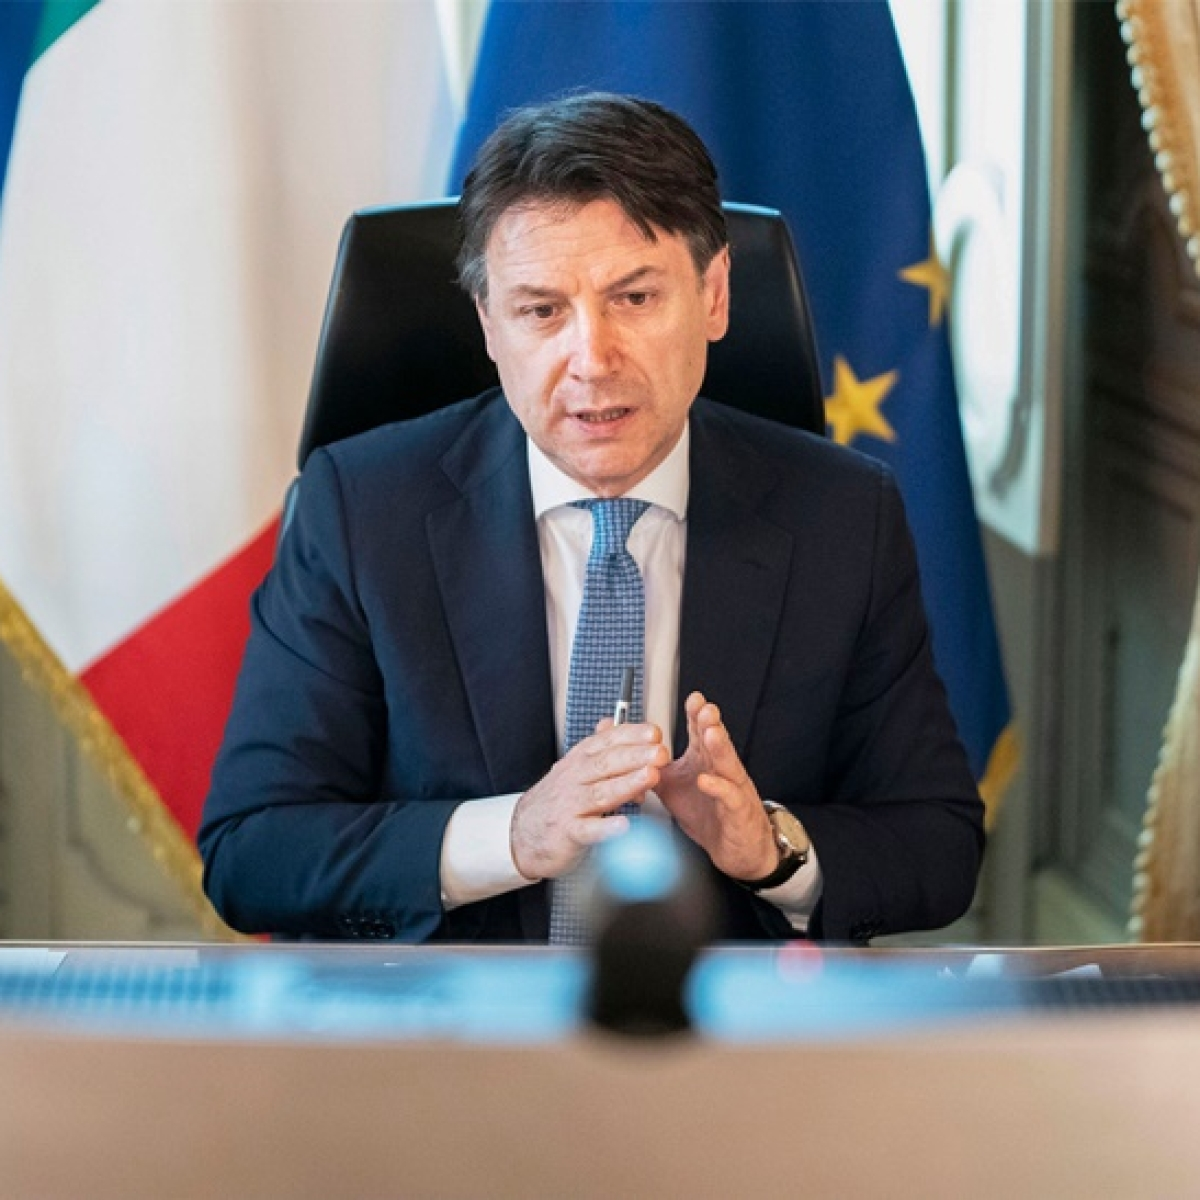 Italian PM Giuseppe Conte announces plan to ease coronavirus lockdown